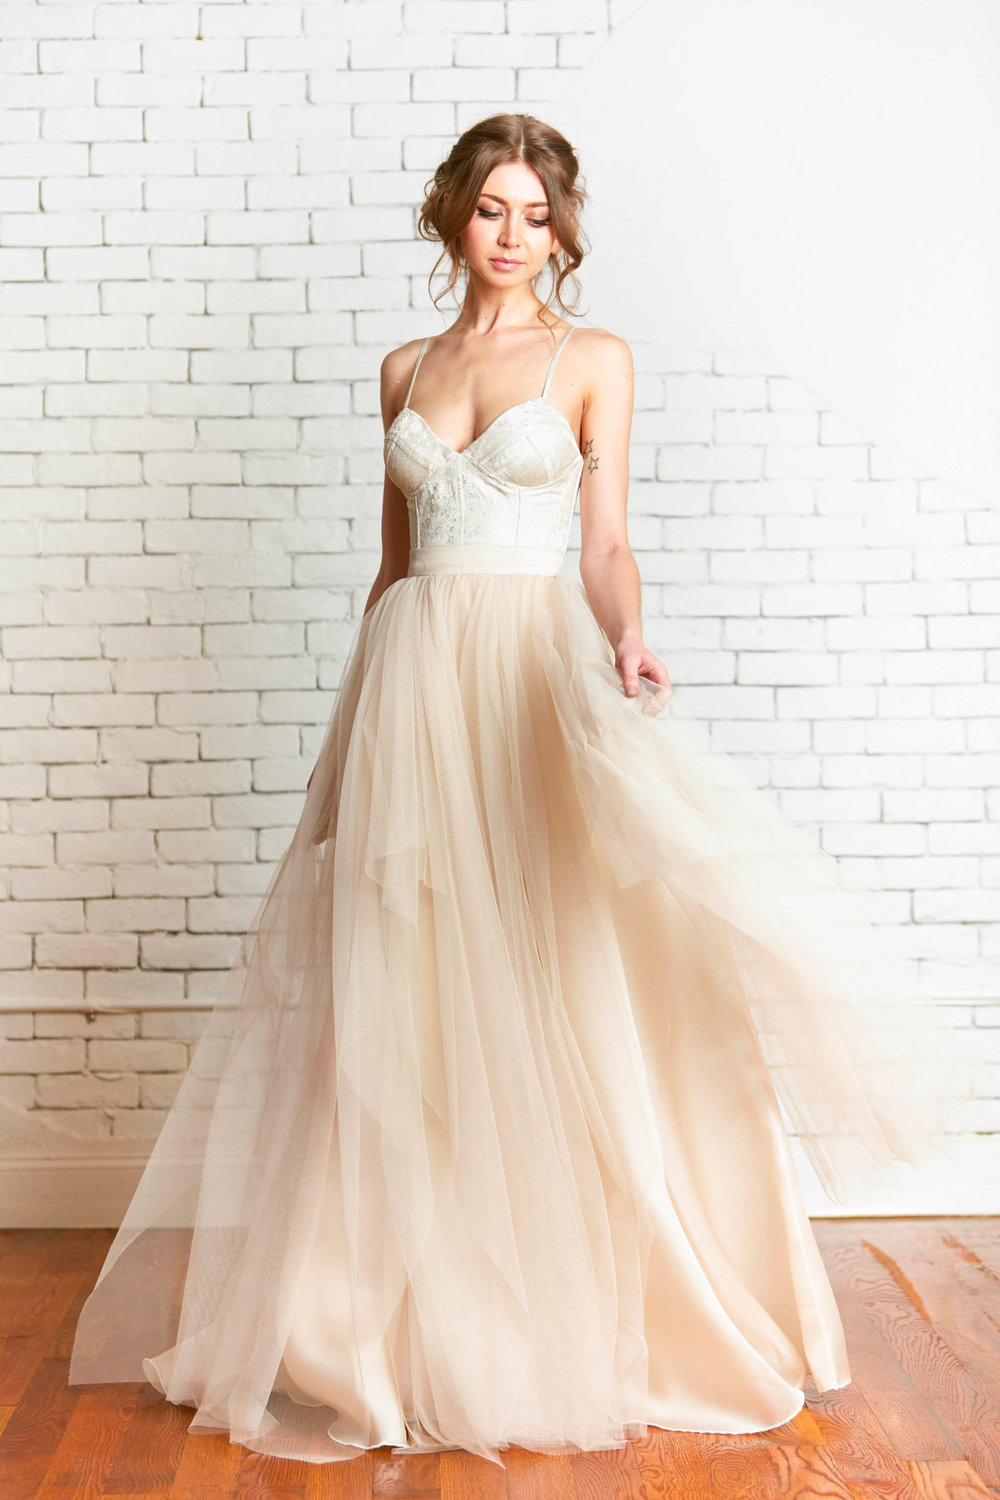 Avery-McKinley Gown